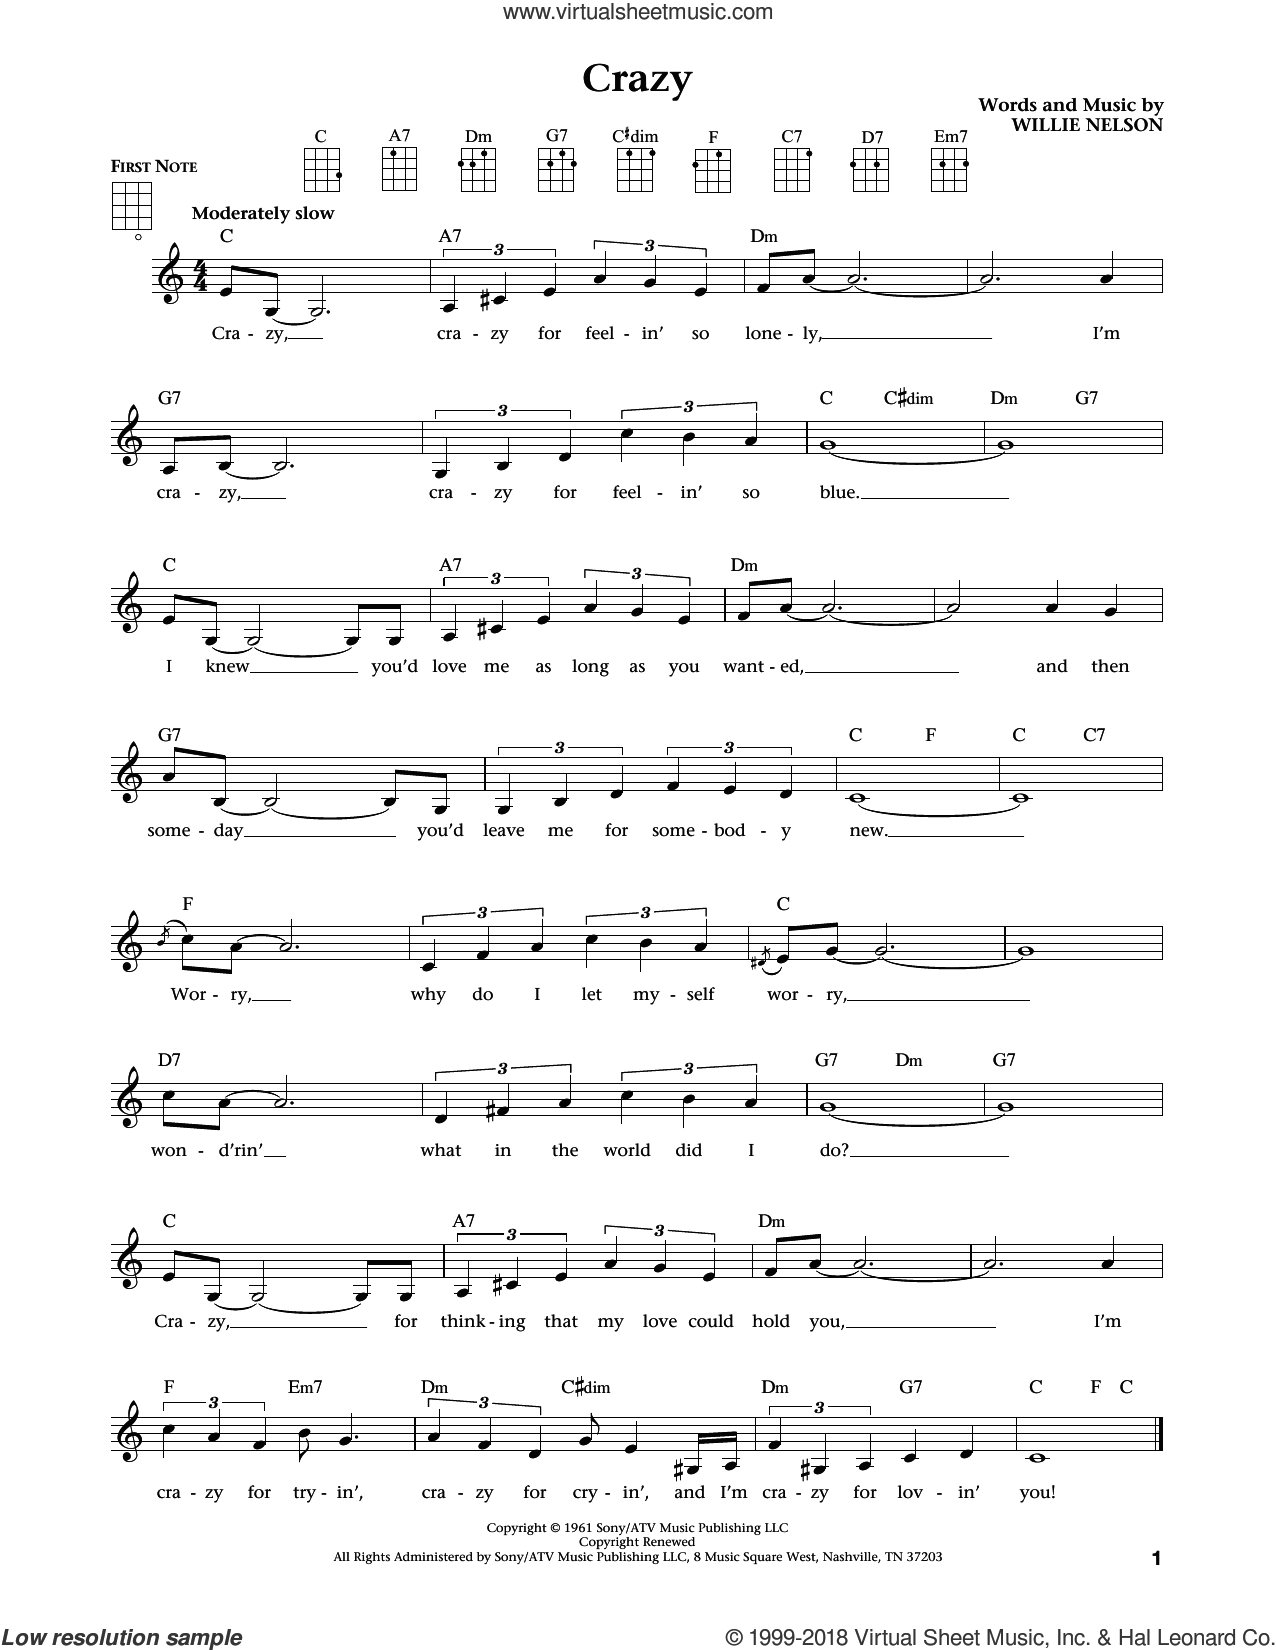 Crazy (from The Daily Ukulele) (arr. Liz and Jim Beloff) sheet music for ukulele by Patsy Cline, Jim Beloff and Liz Beloff, intermediate skill level